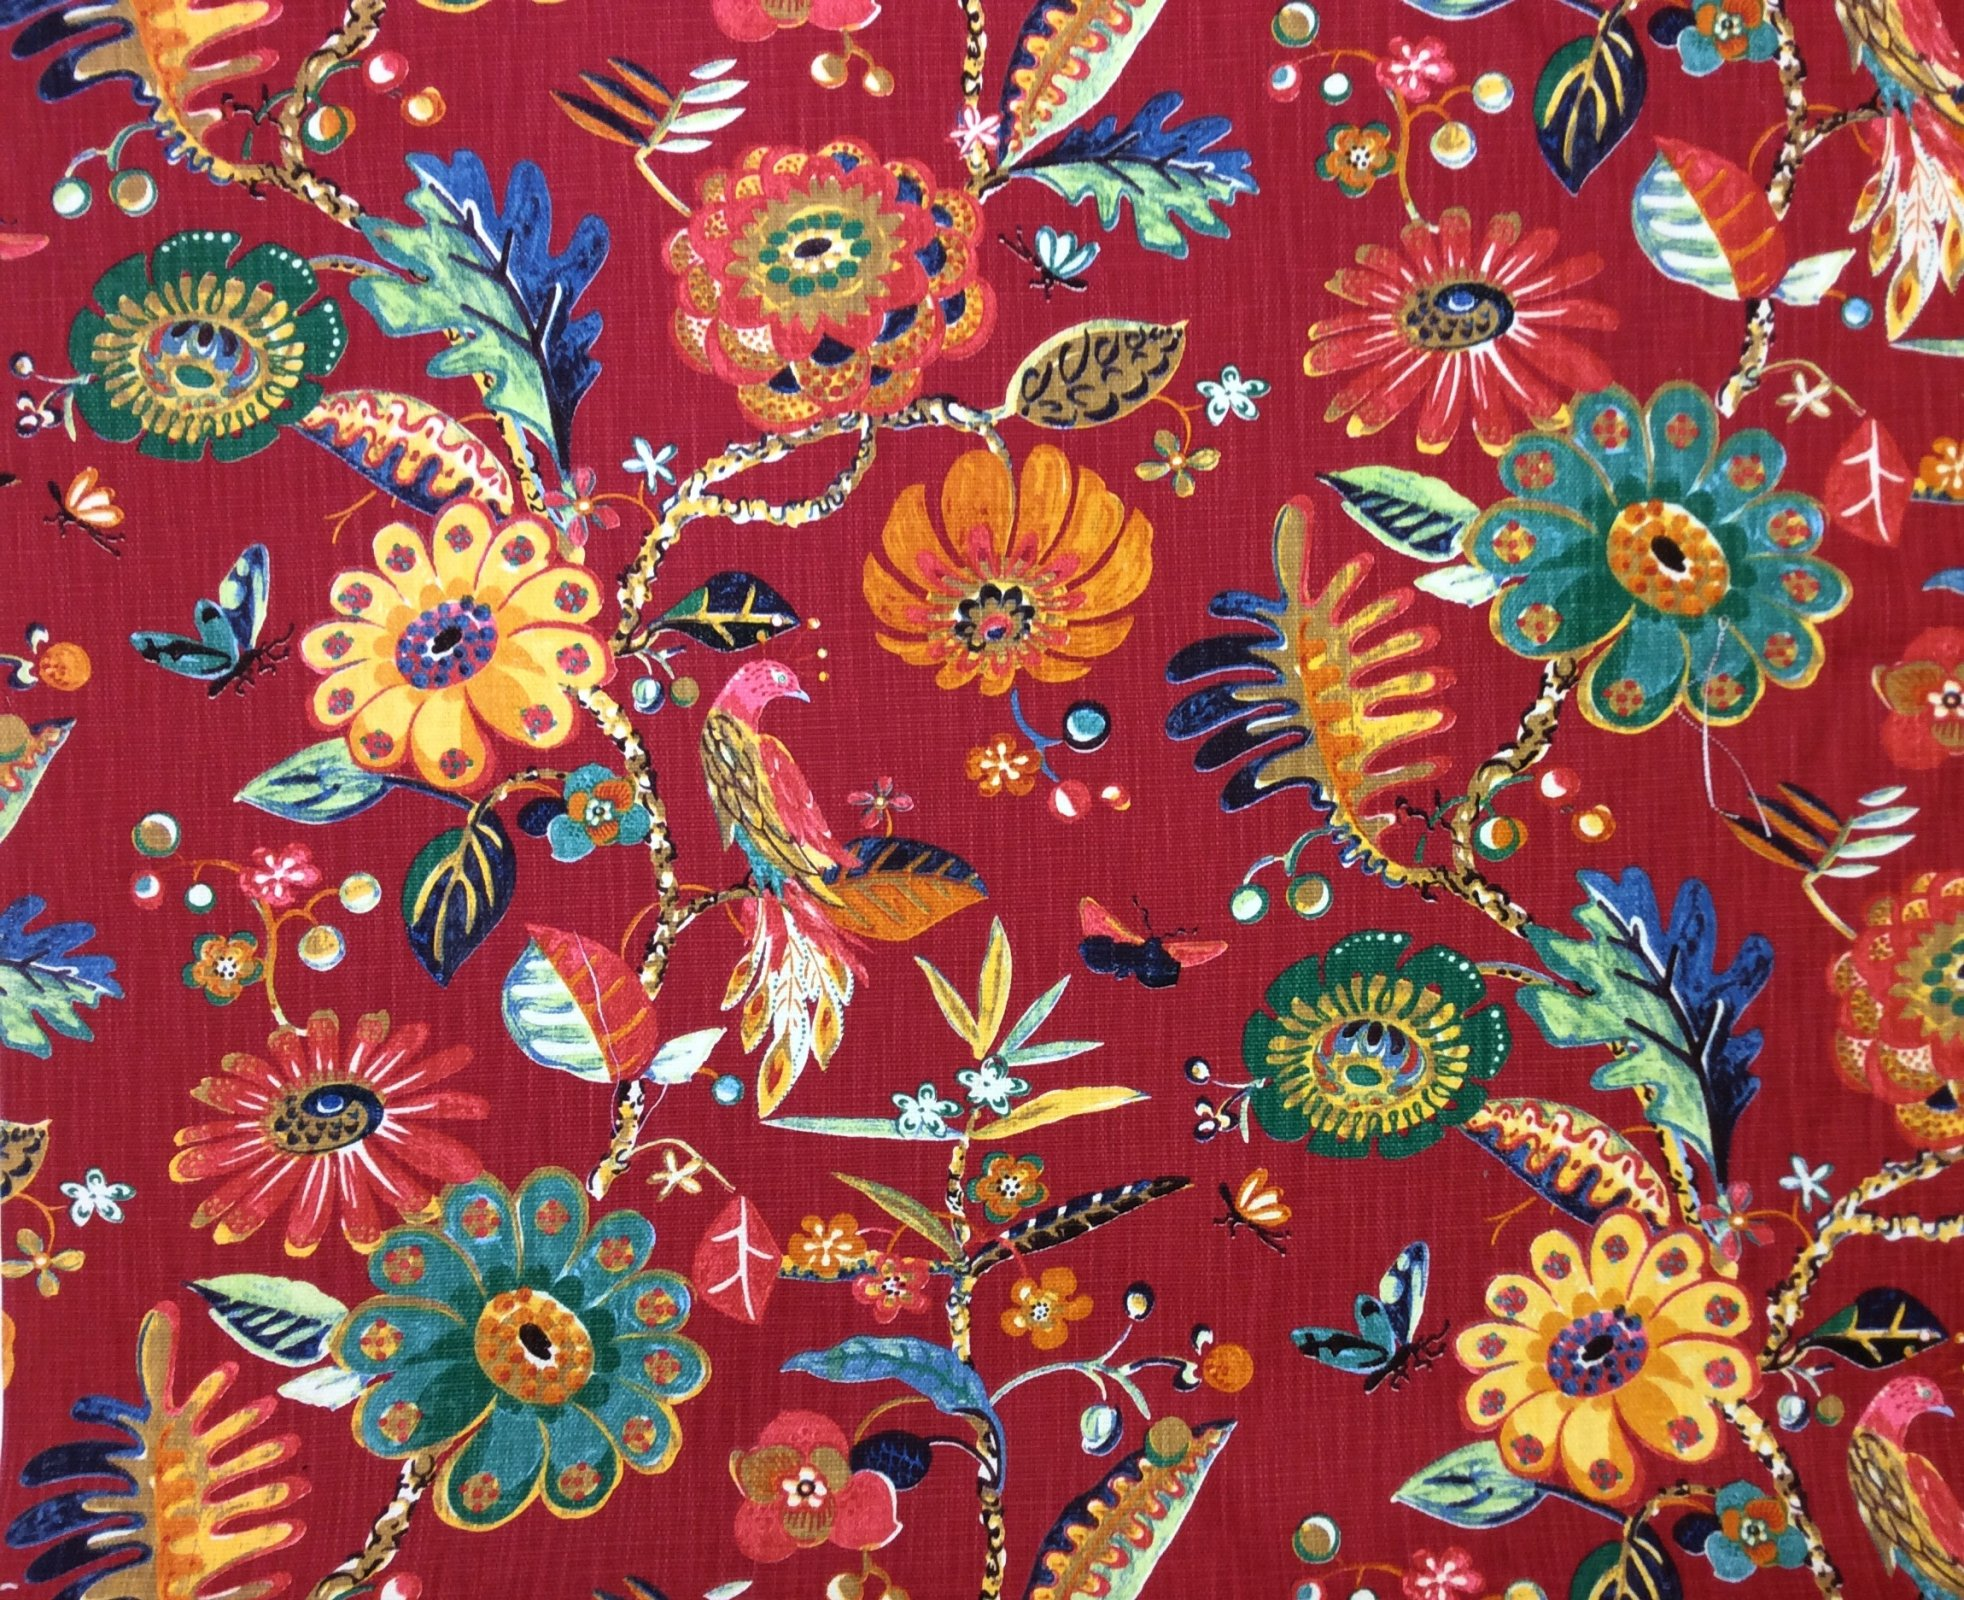 Beautiful Watercolor Modern Floral Peacock Butterfly Upholstery Home Decor Heavy Cotton Slubby Fabric OR140